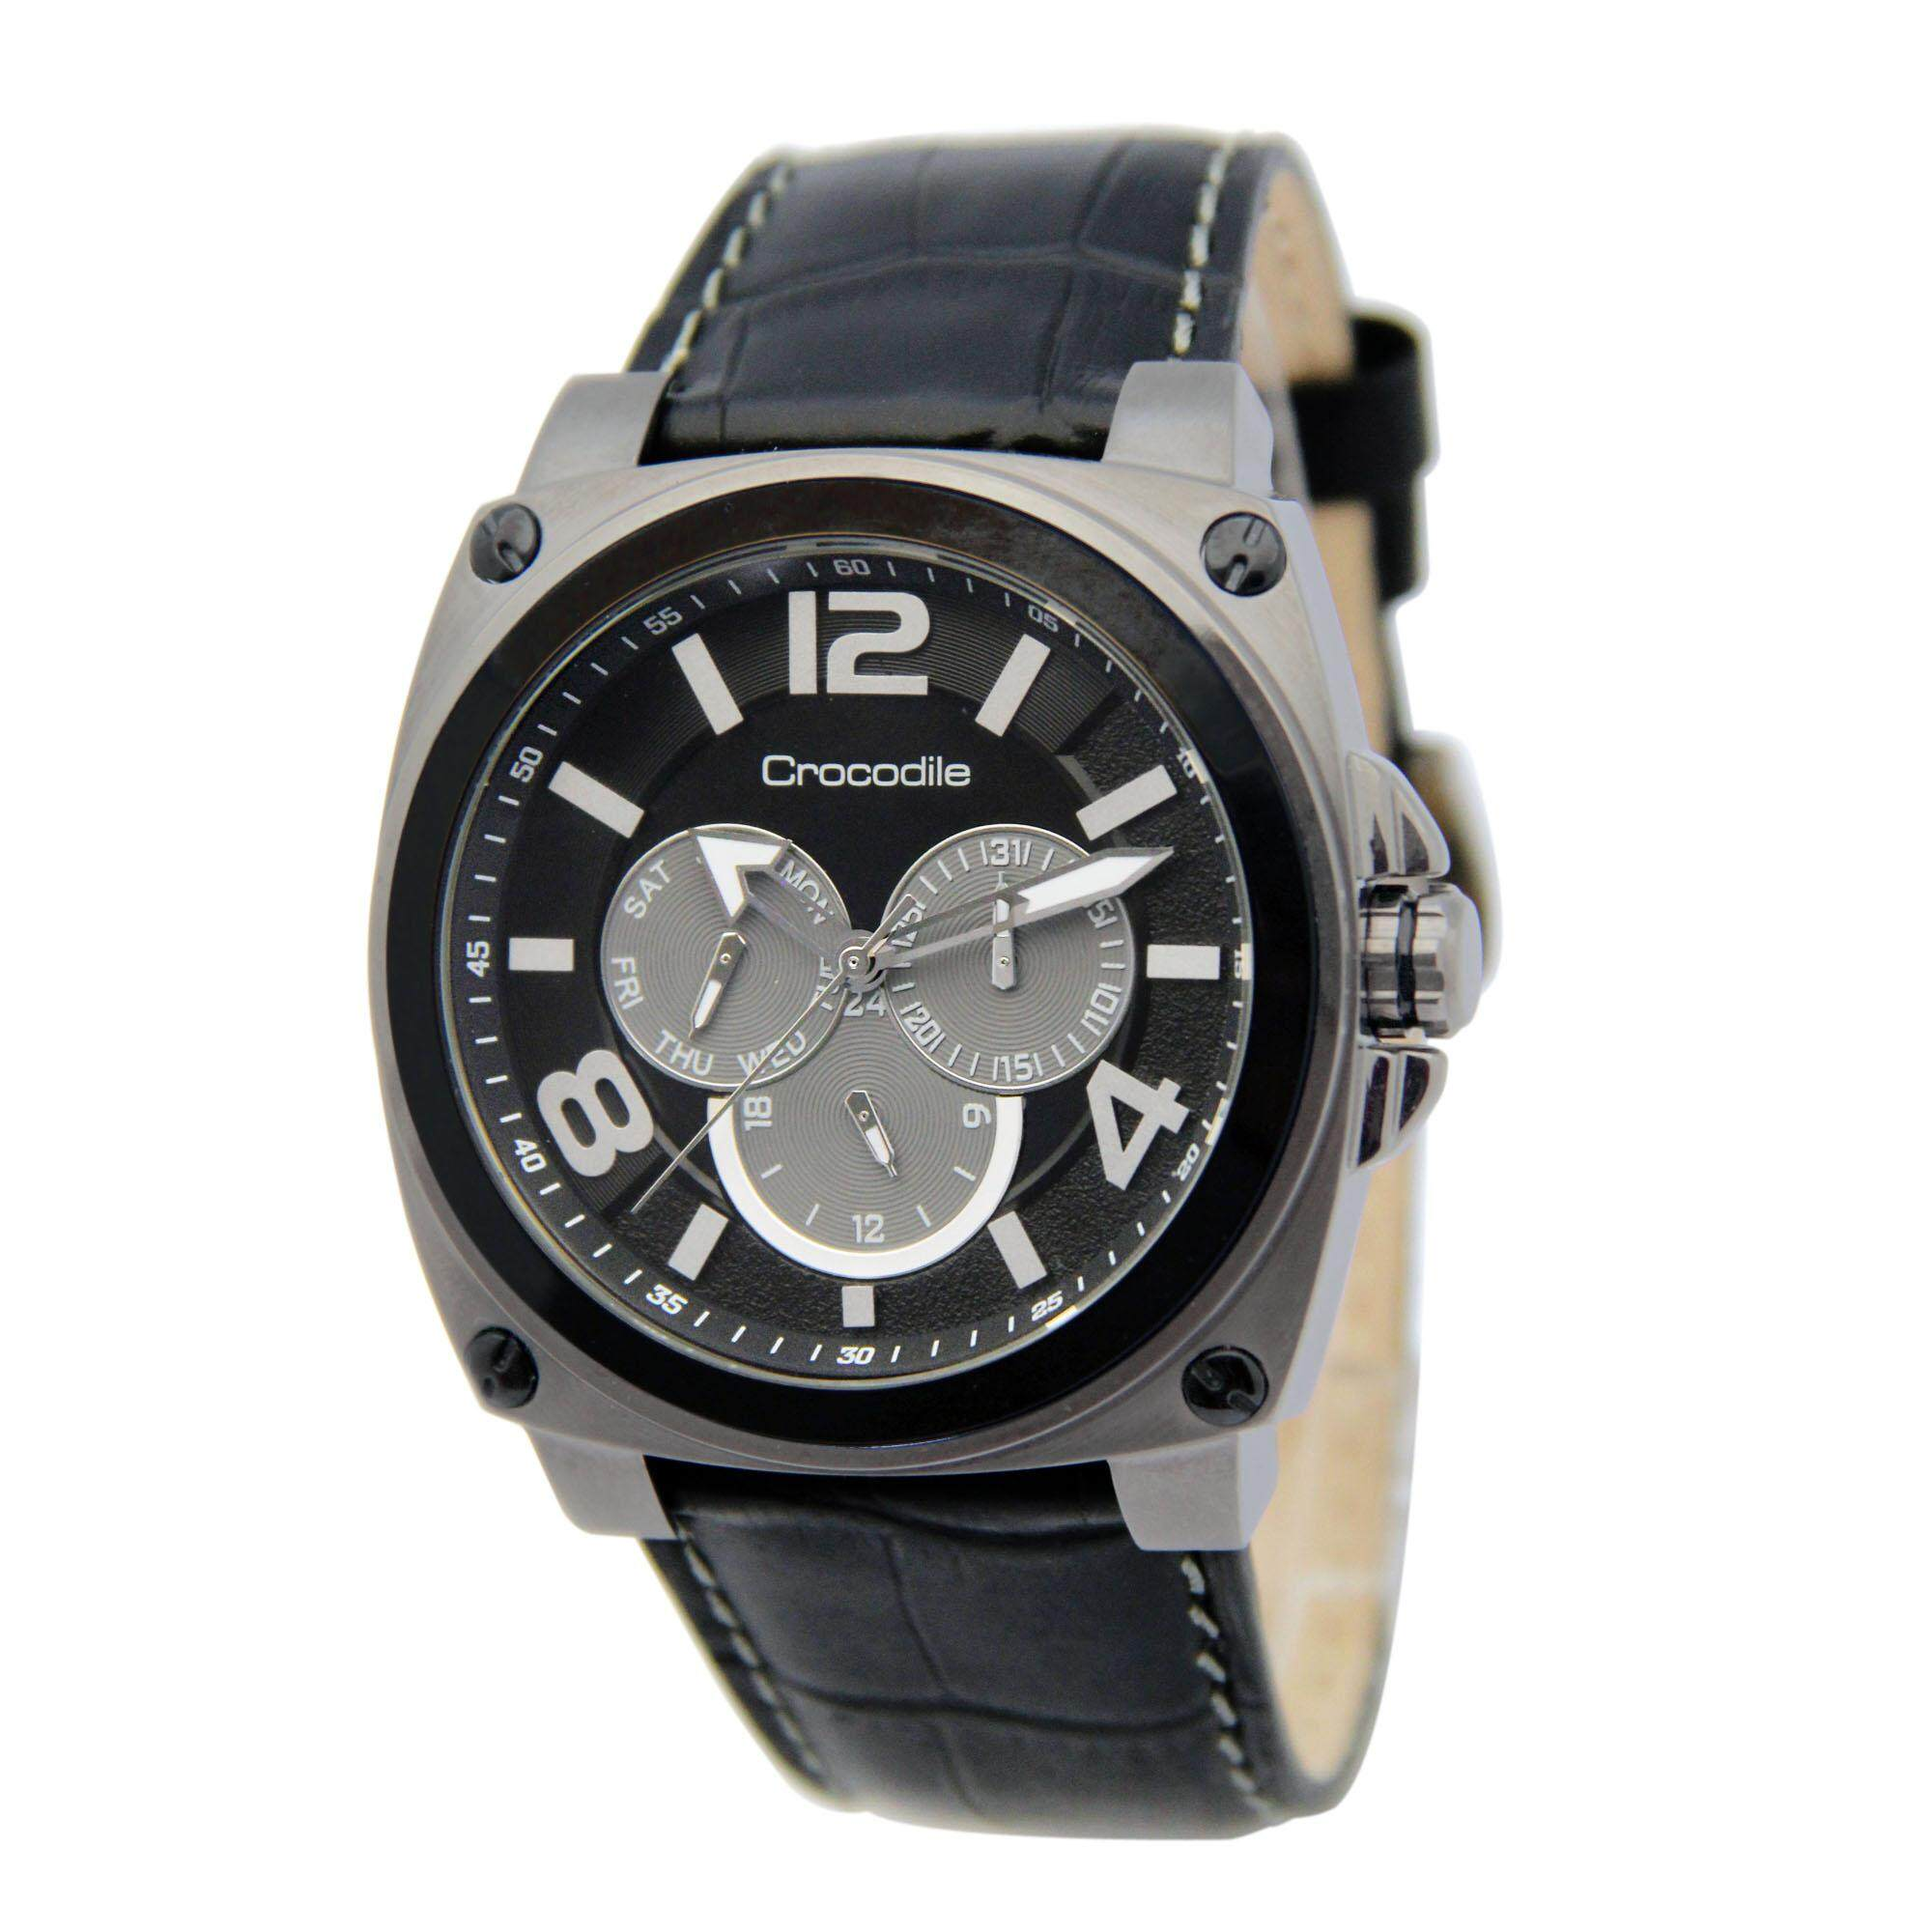 watches carrera heuer mine pin brown crocodile tag perhaps in will white you on be